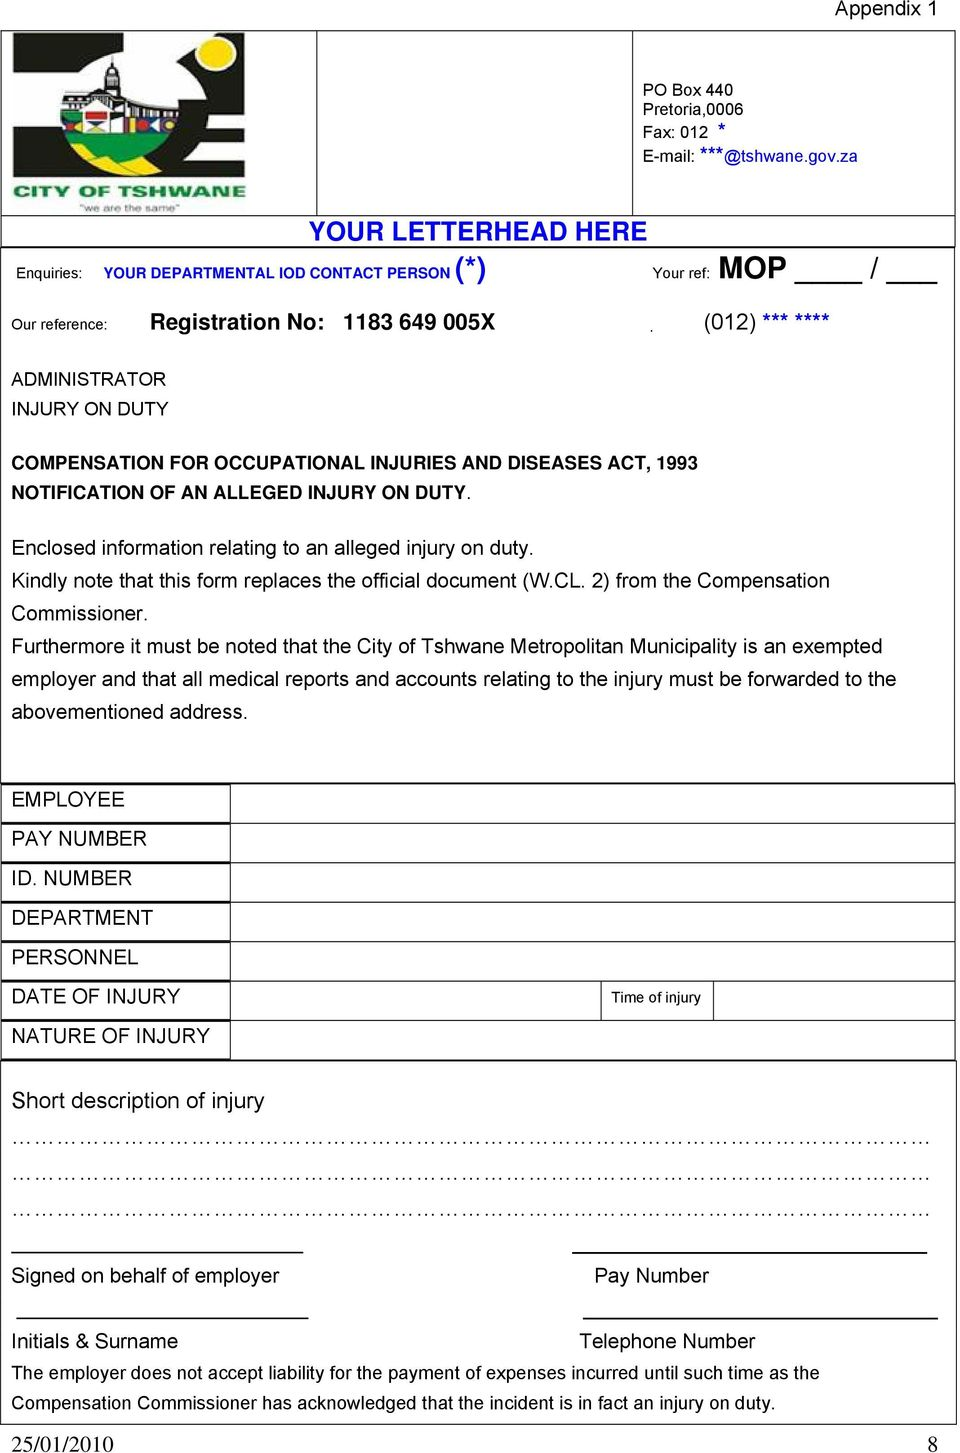 OCCUPATIONAL INJURIES AND DISEASES ACT, 1993 NOTIFICATION OF AN ALLEGED INJURY ON DUTY. Enclosed information relating to an alleged injury on duty.